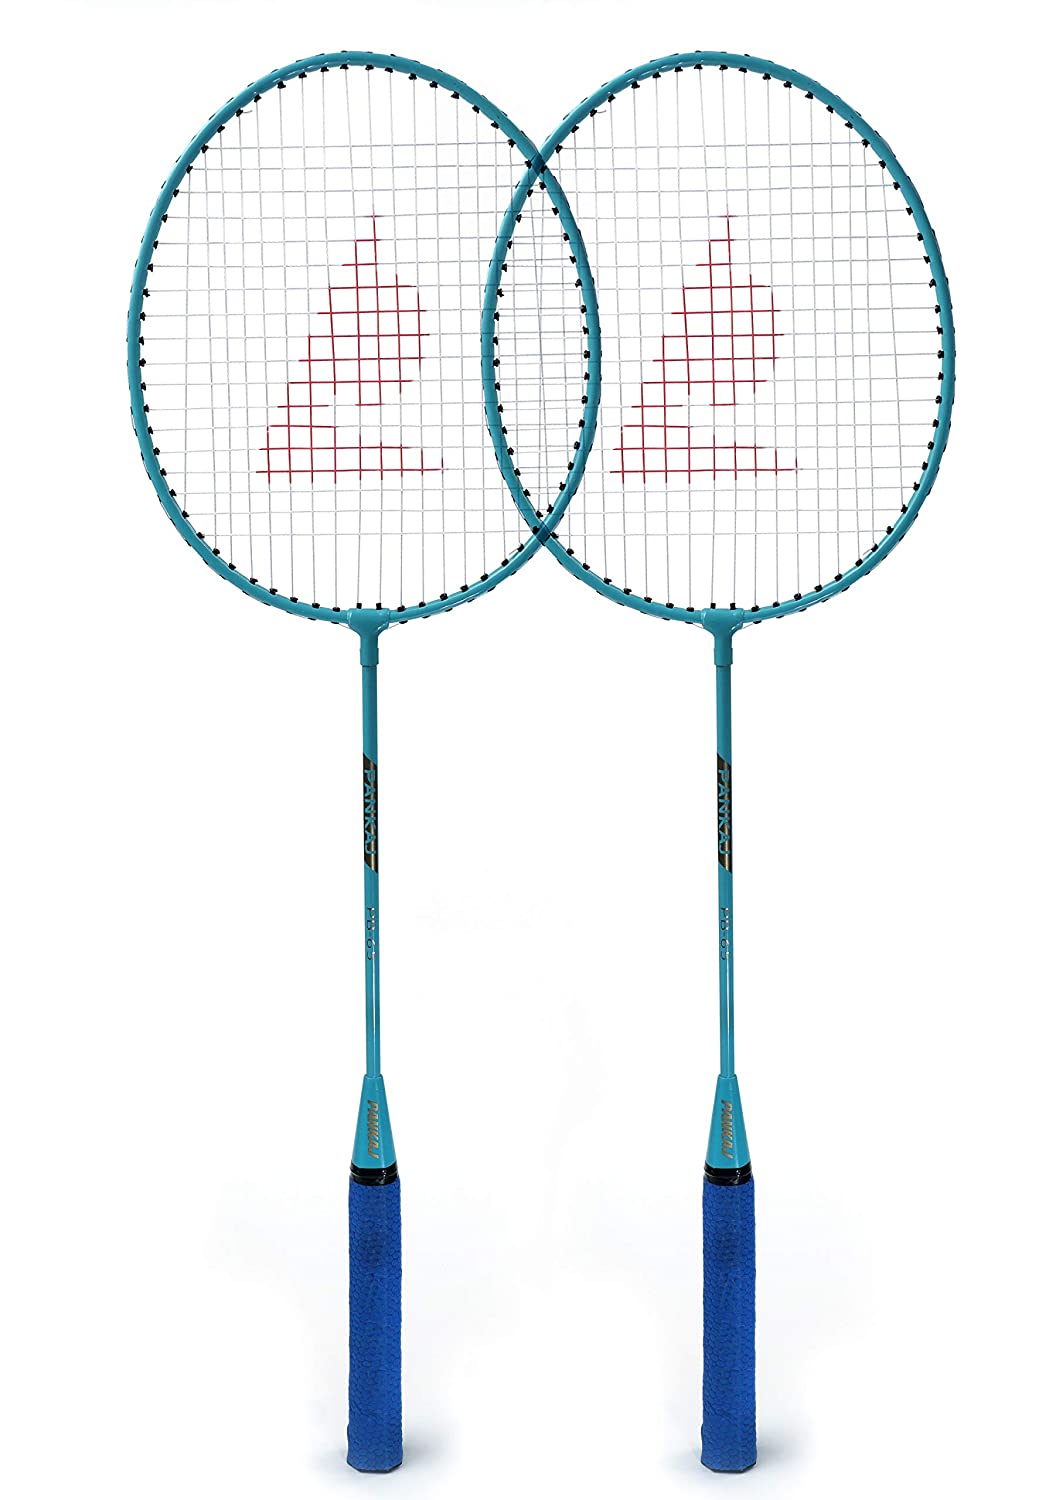 Badminton Racket - PB 65 - Pack for 2 - (Blue)